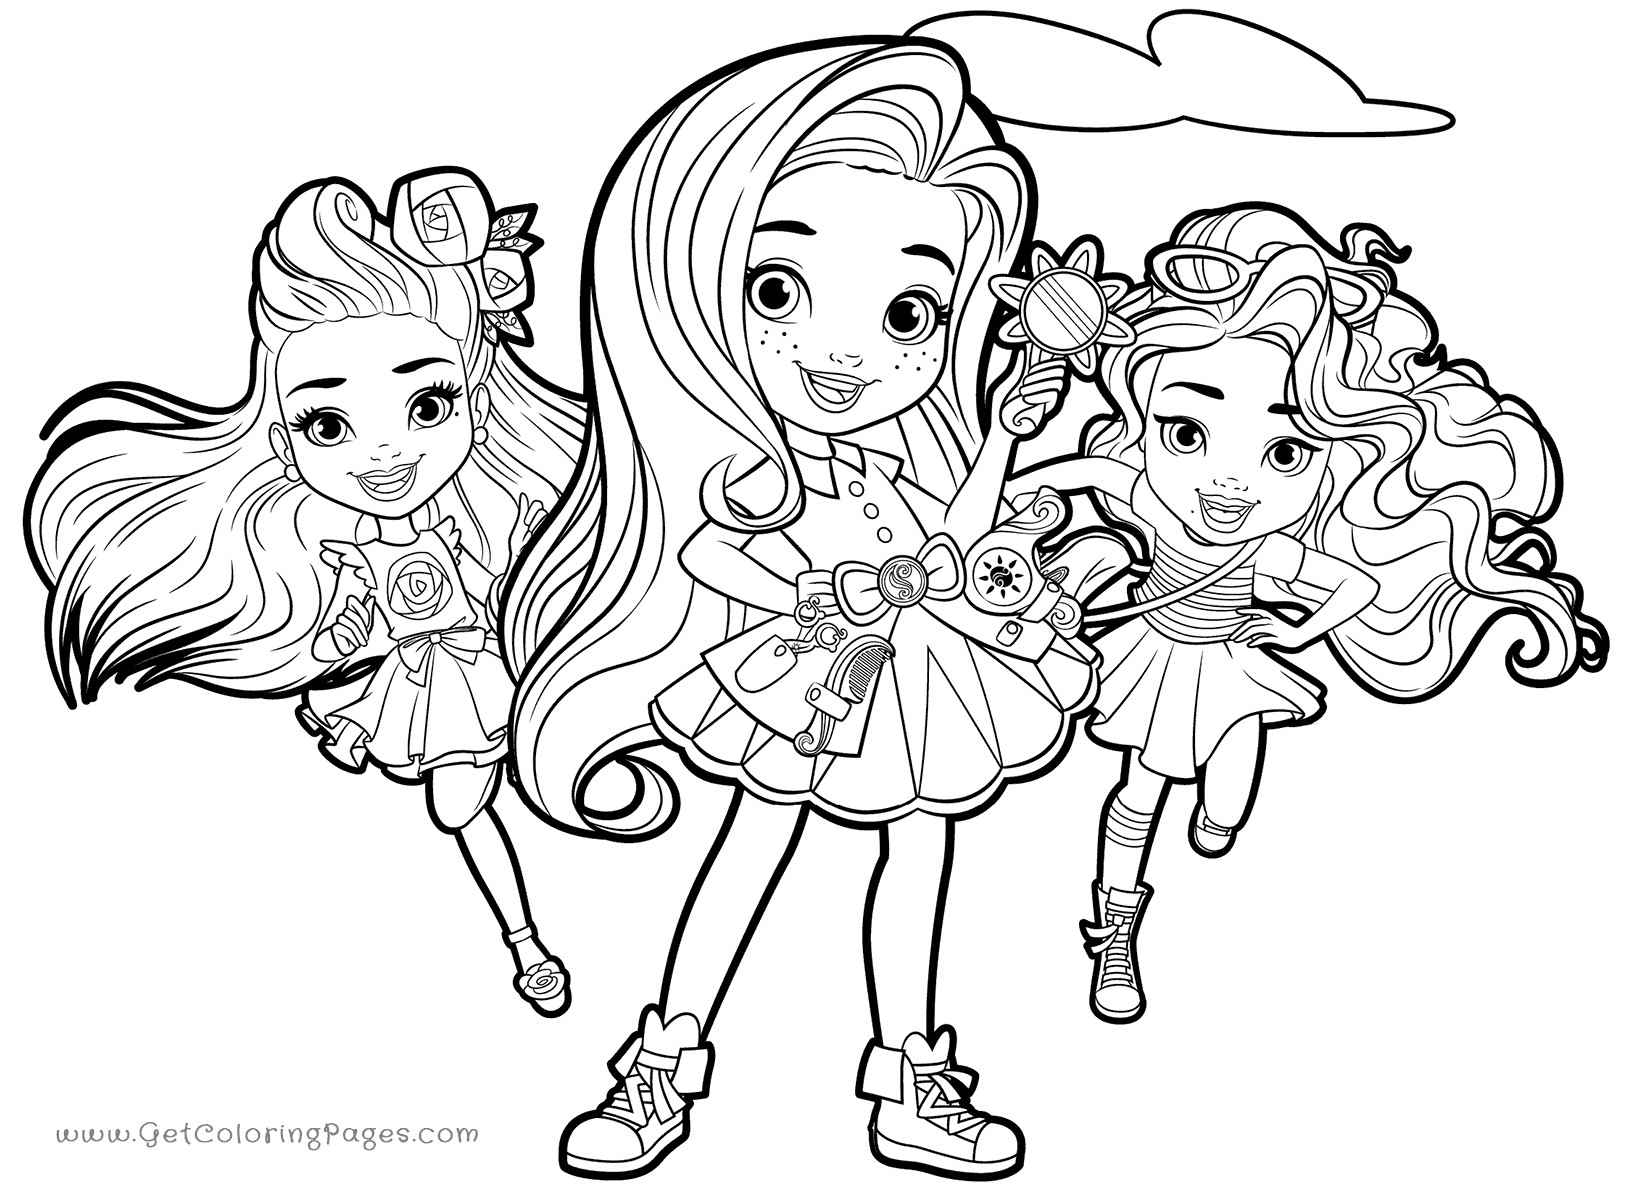 sunny day coloring book happy holidays with sunny day coloring page get coloring day coloring book sunny